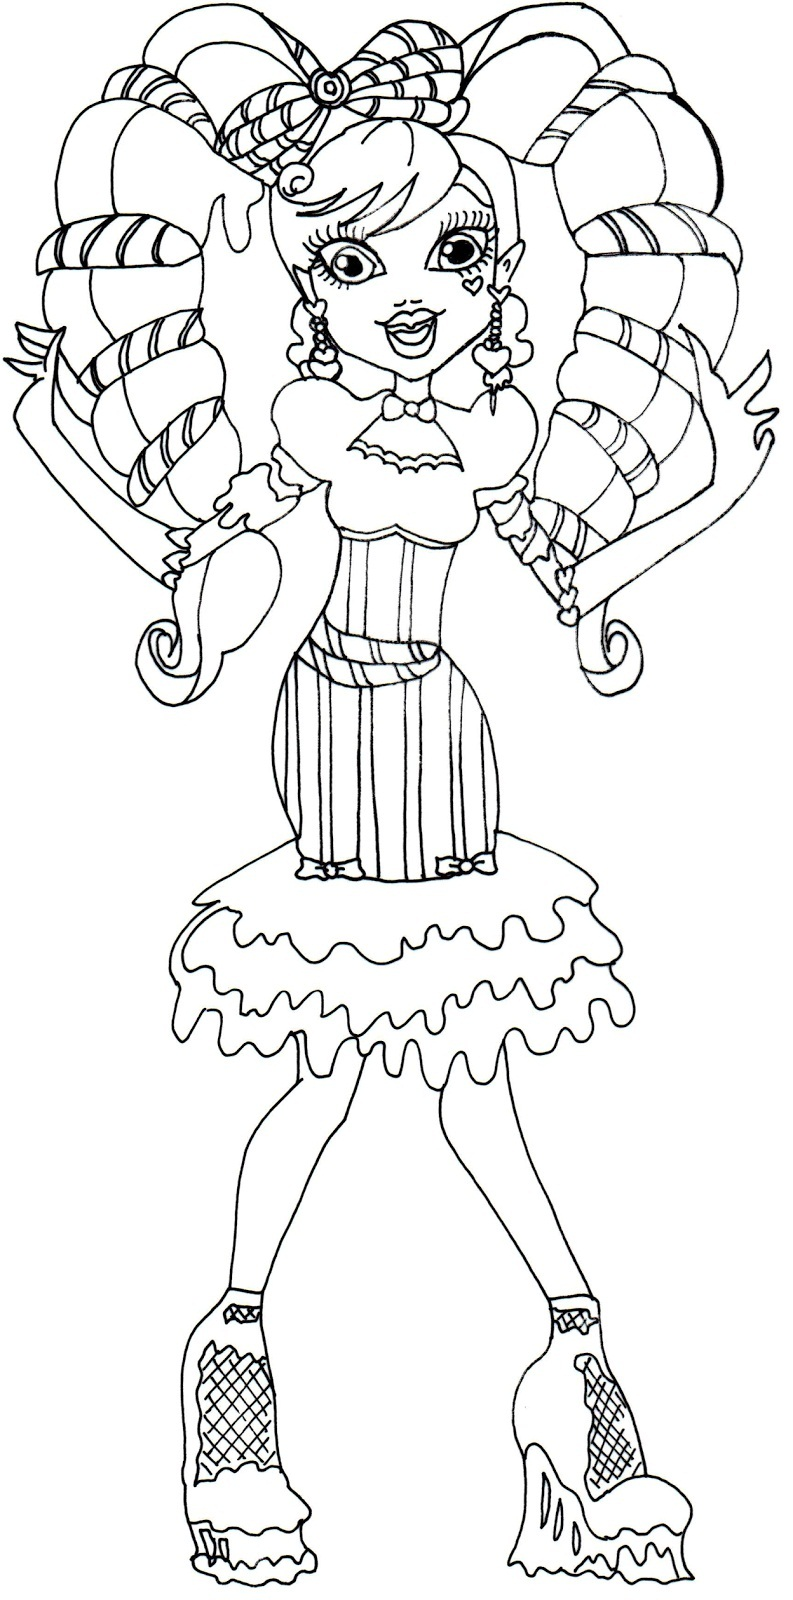 Printable Monster High Coloring Pages Coloring Me High Coloring Pages Print